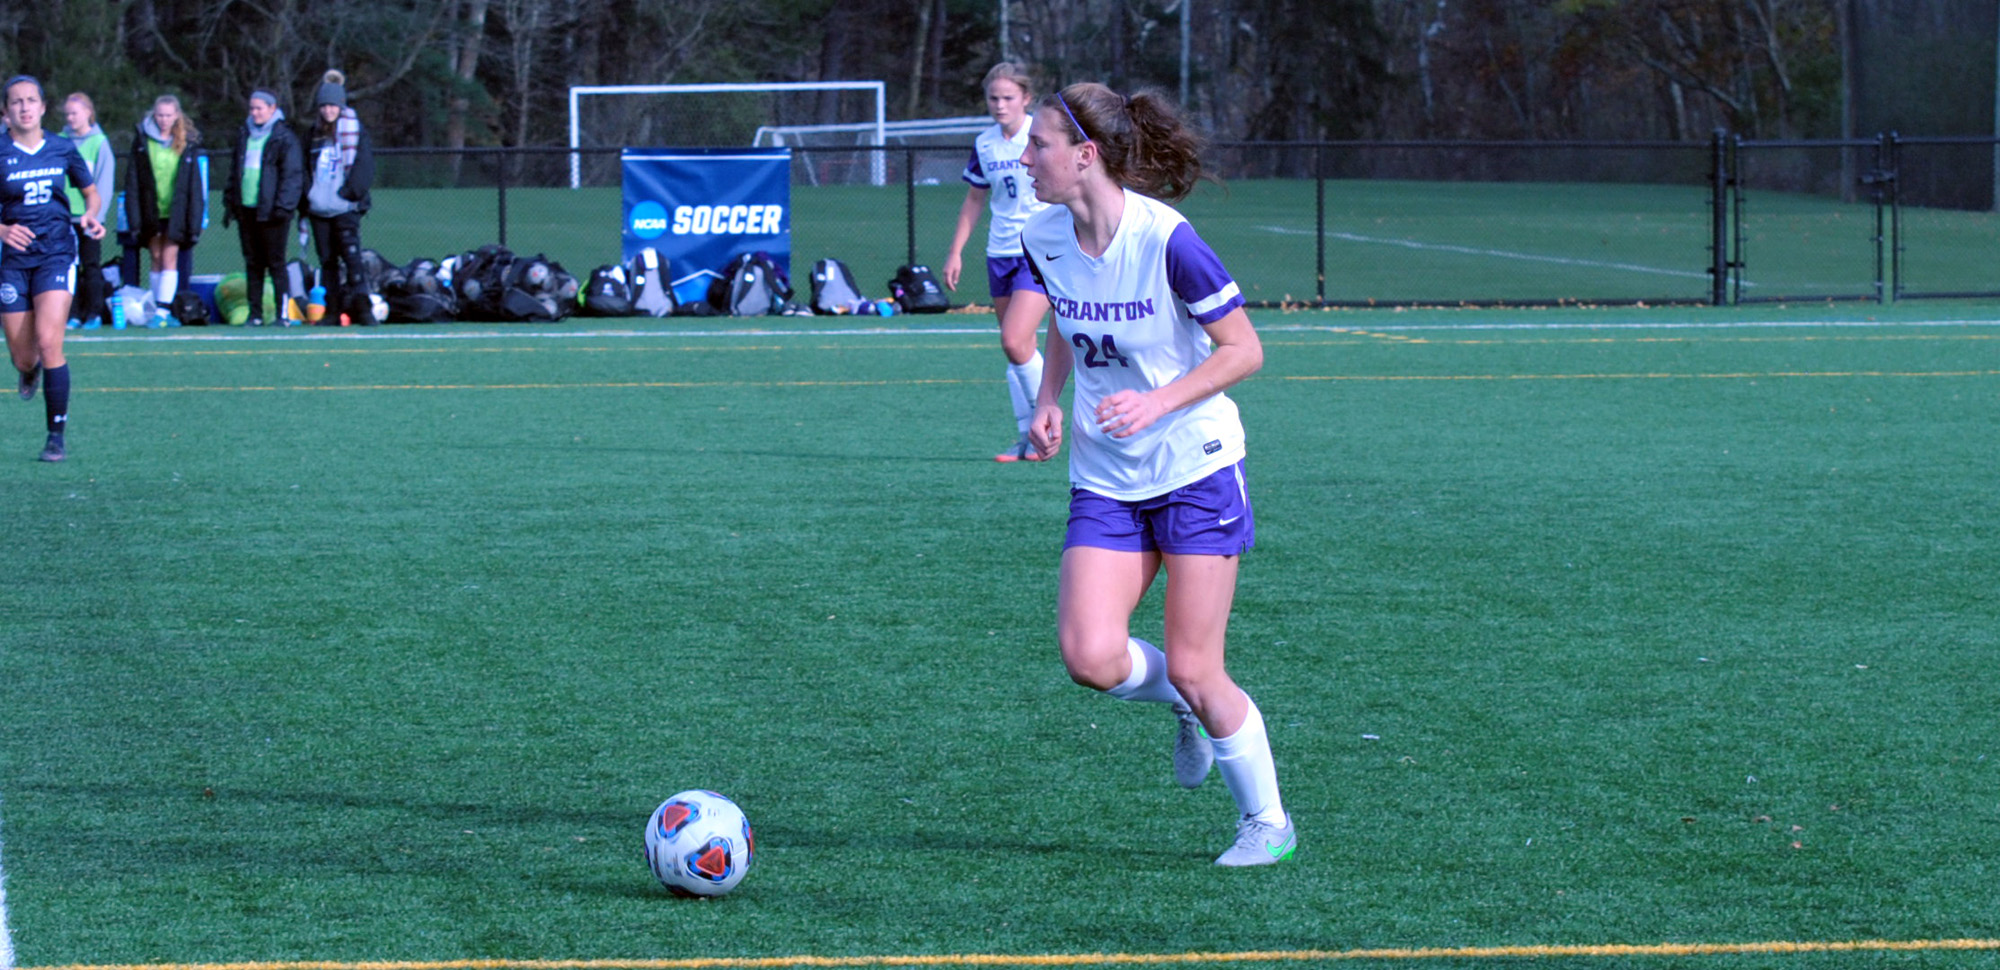 Junior defender Becca Russo scored just before halftime on Friday night against Farmingdale State.